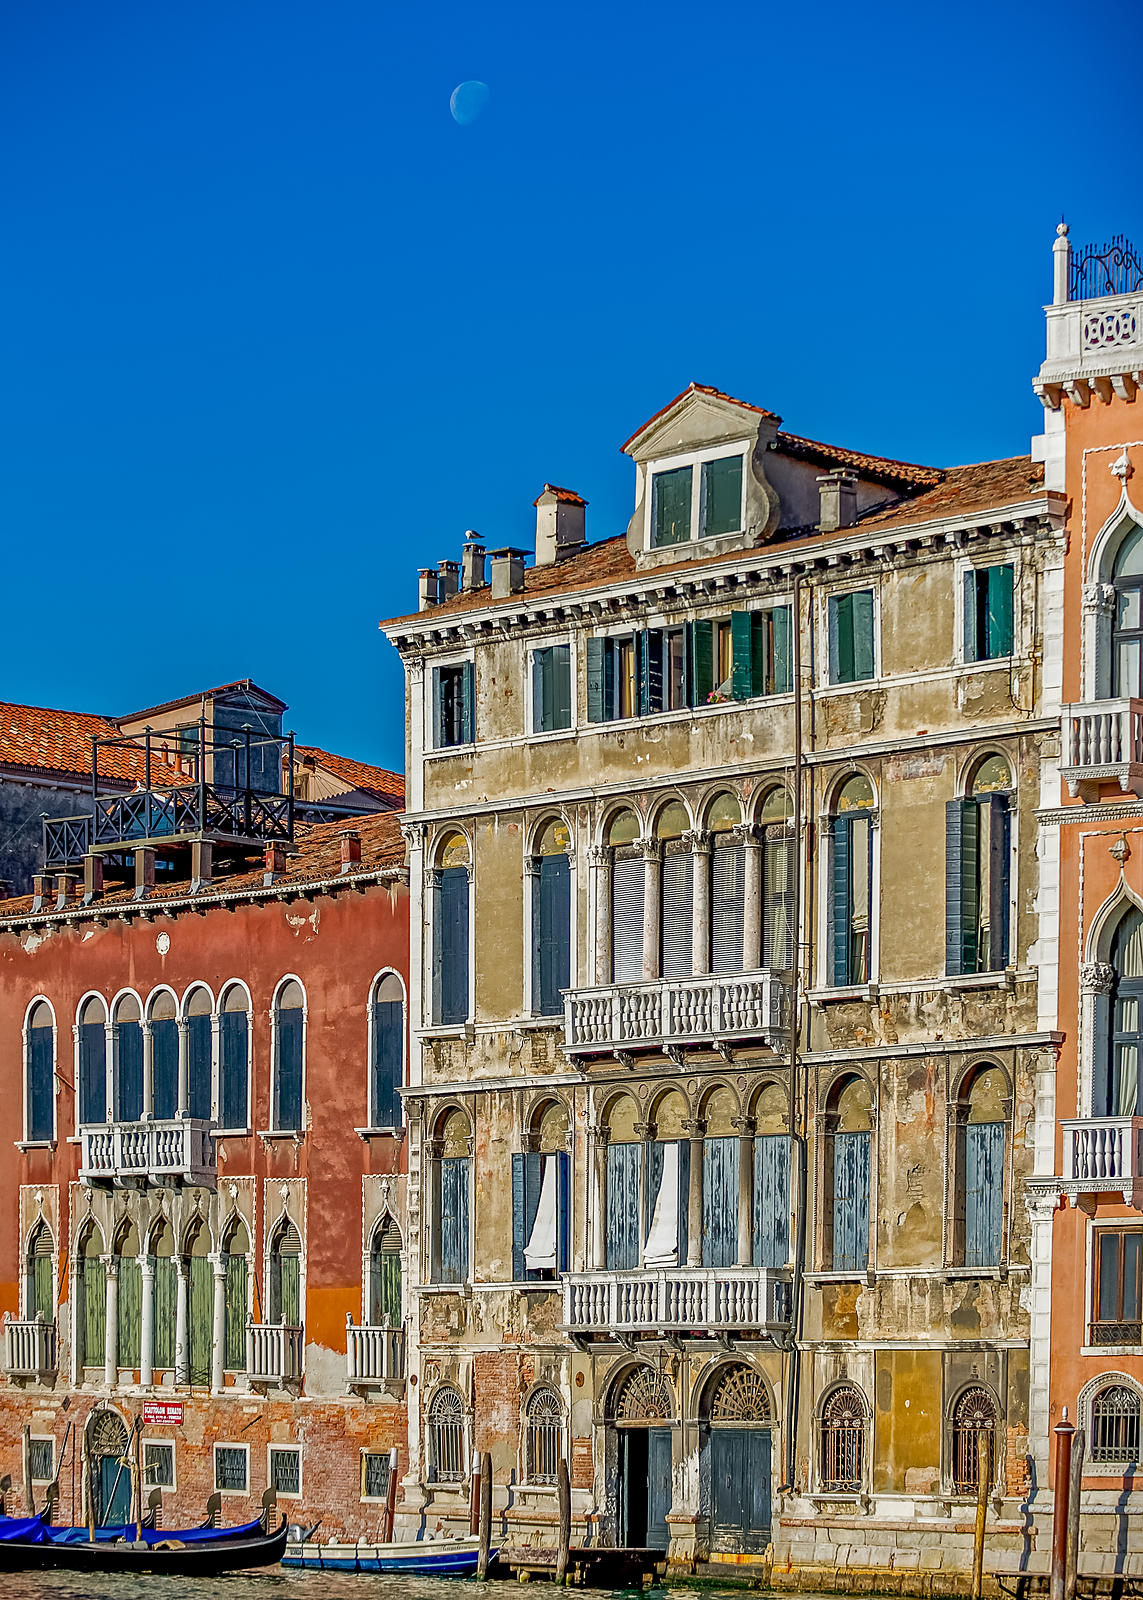 Palazzo on the Grand Canal, Venice, with the Moon in Daytime